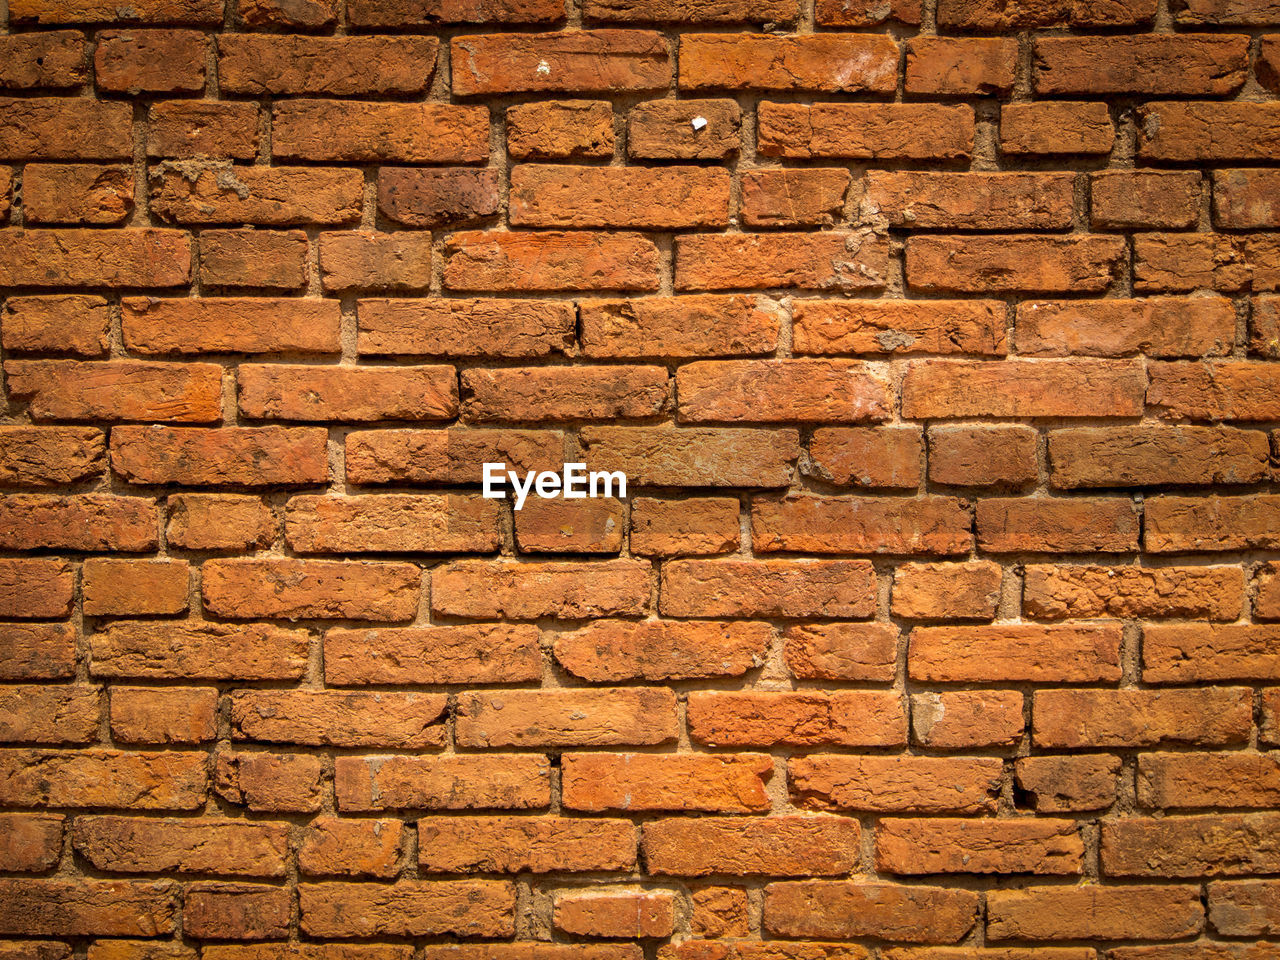 brick, brick wall, wall, architecture, full frame, backgrounds, built structure, textured, wall - building feature, brown, pattern, no people, close-up, in a row, construction material, solid, building exterior, outdoors, copy space, day, textured effect